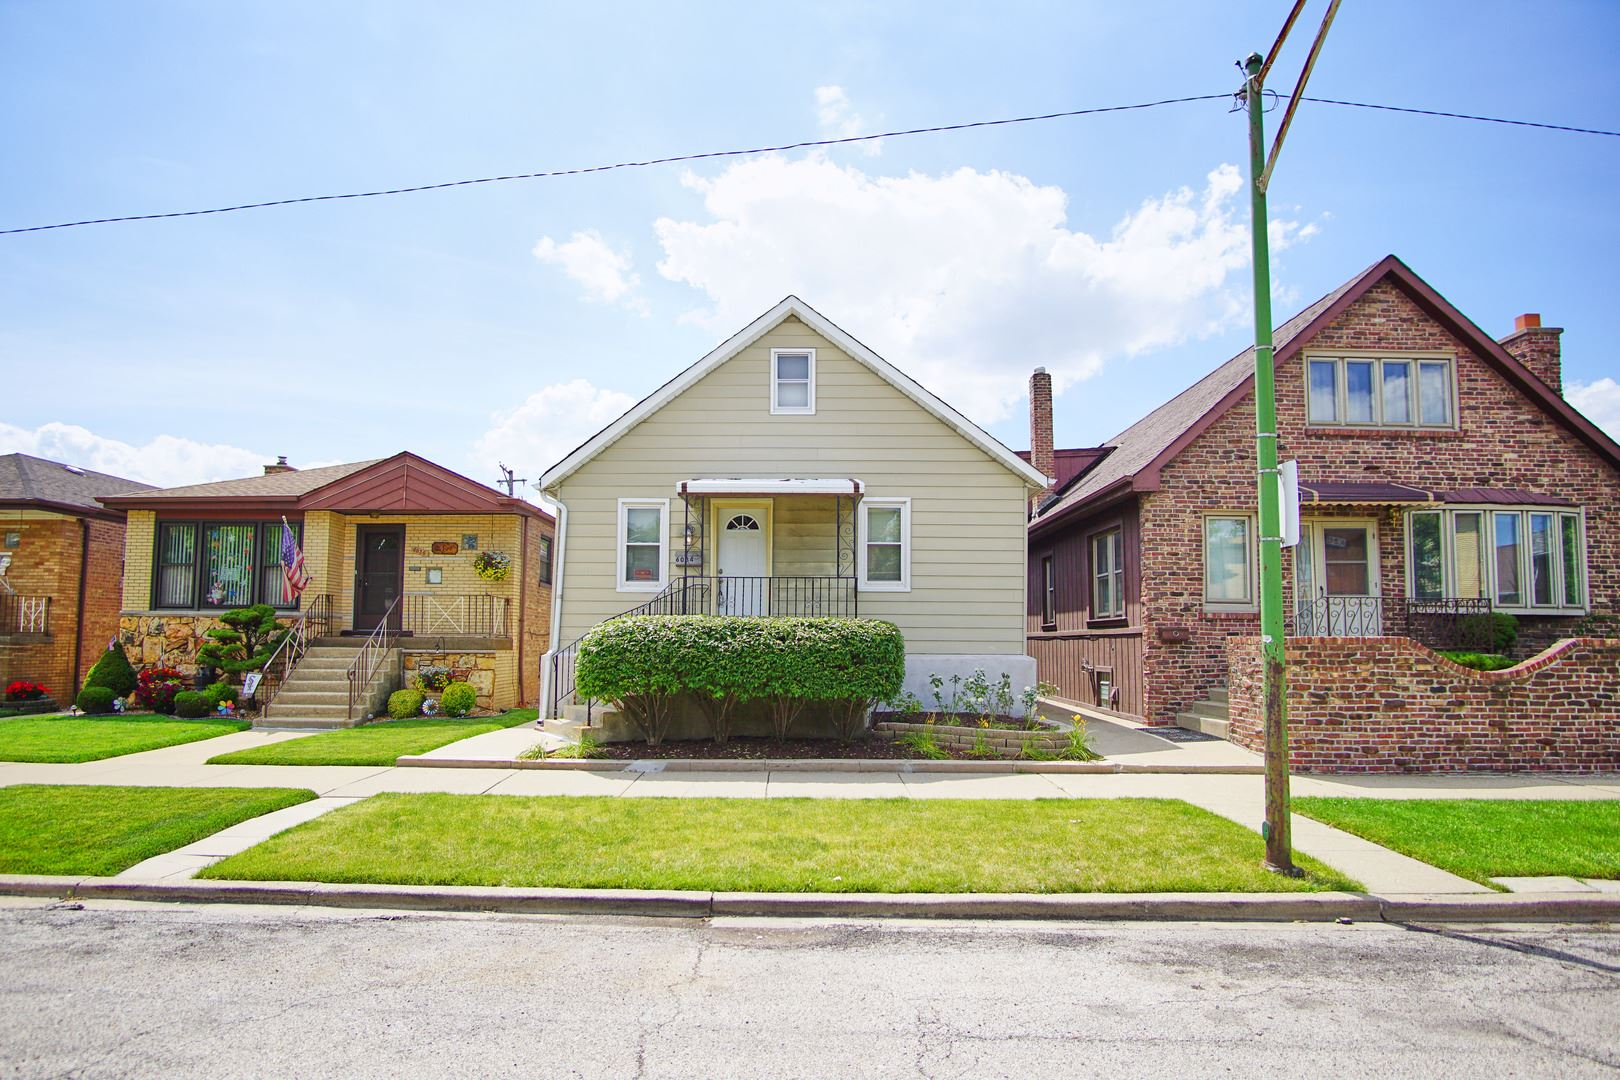 6034 S Keating Avenue, Chicago, IL 60629 - #: 10760273